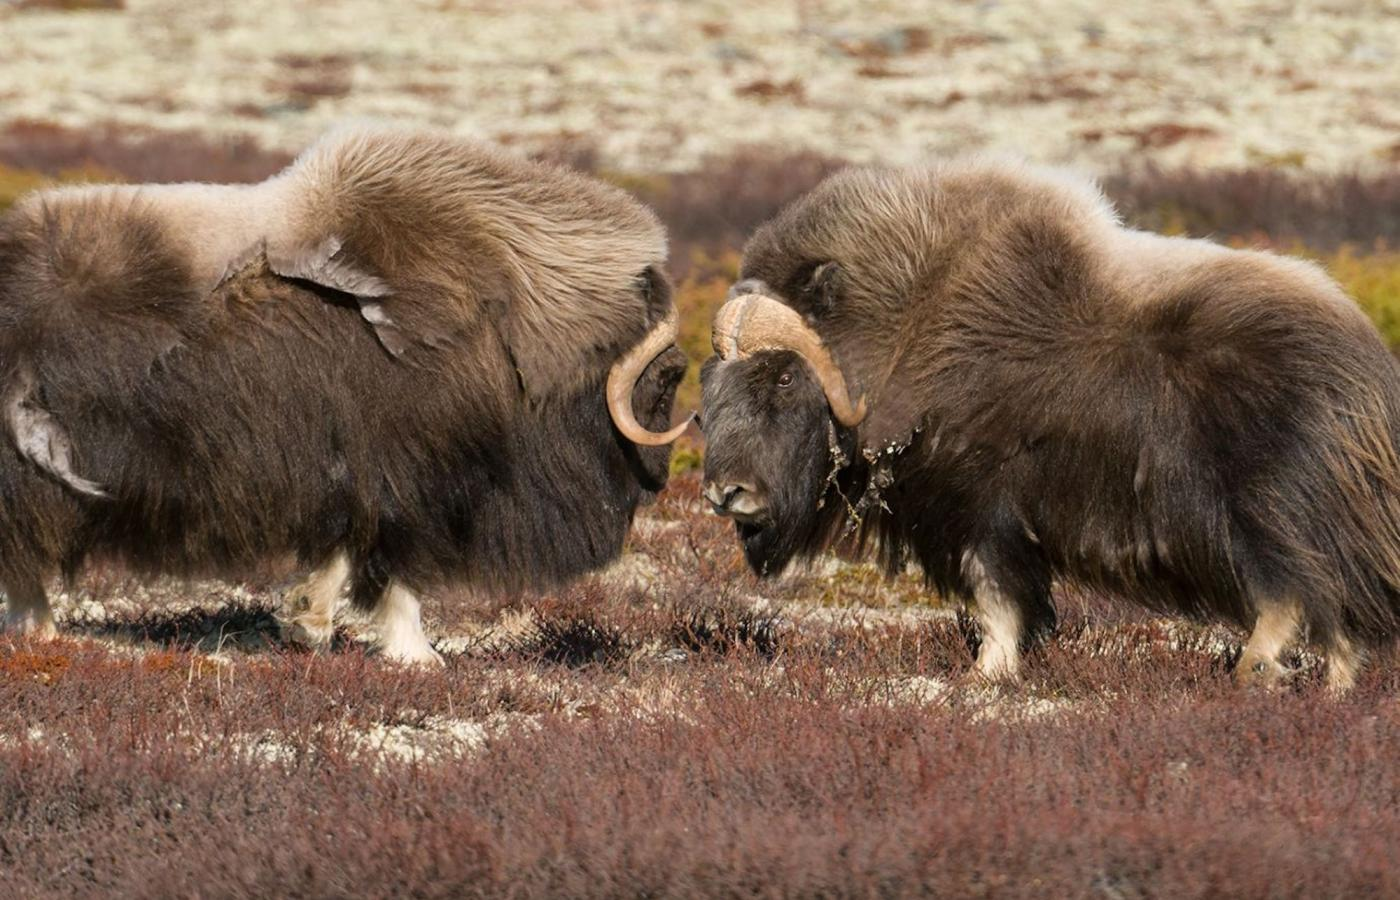 muskoxen fighting